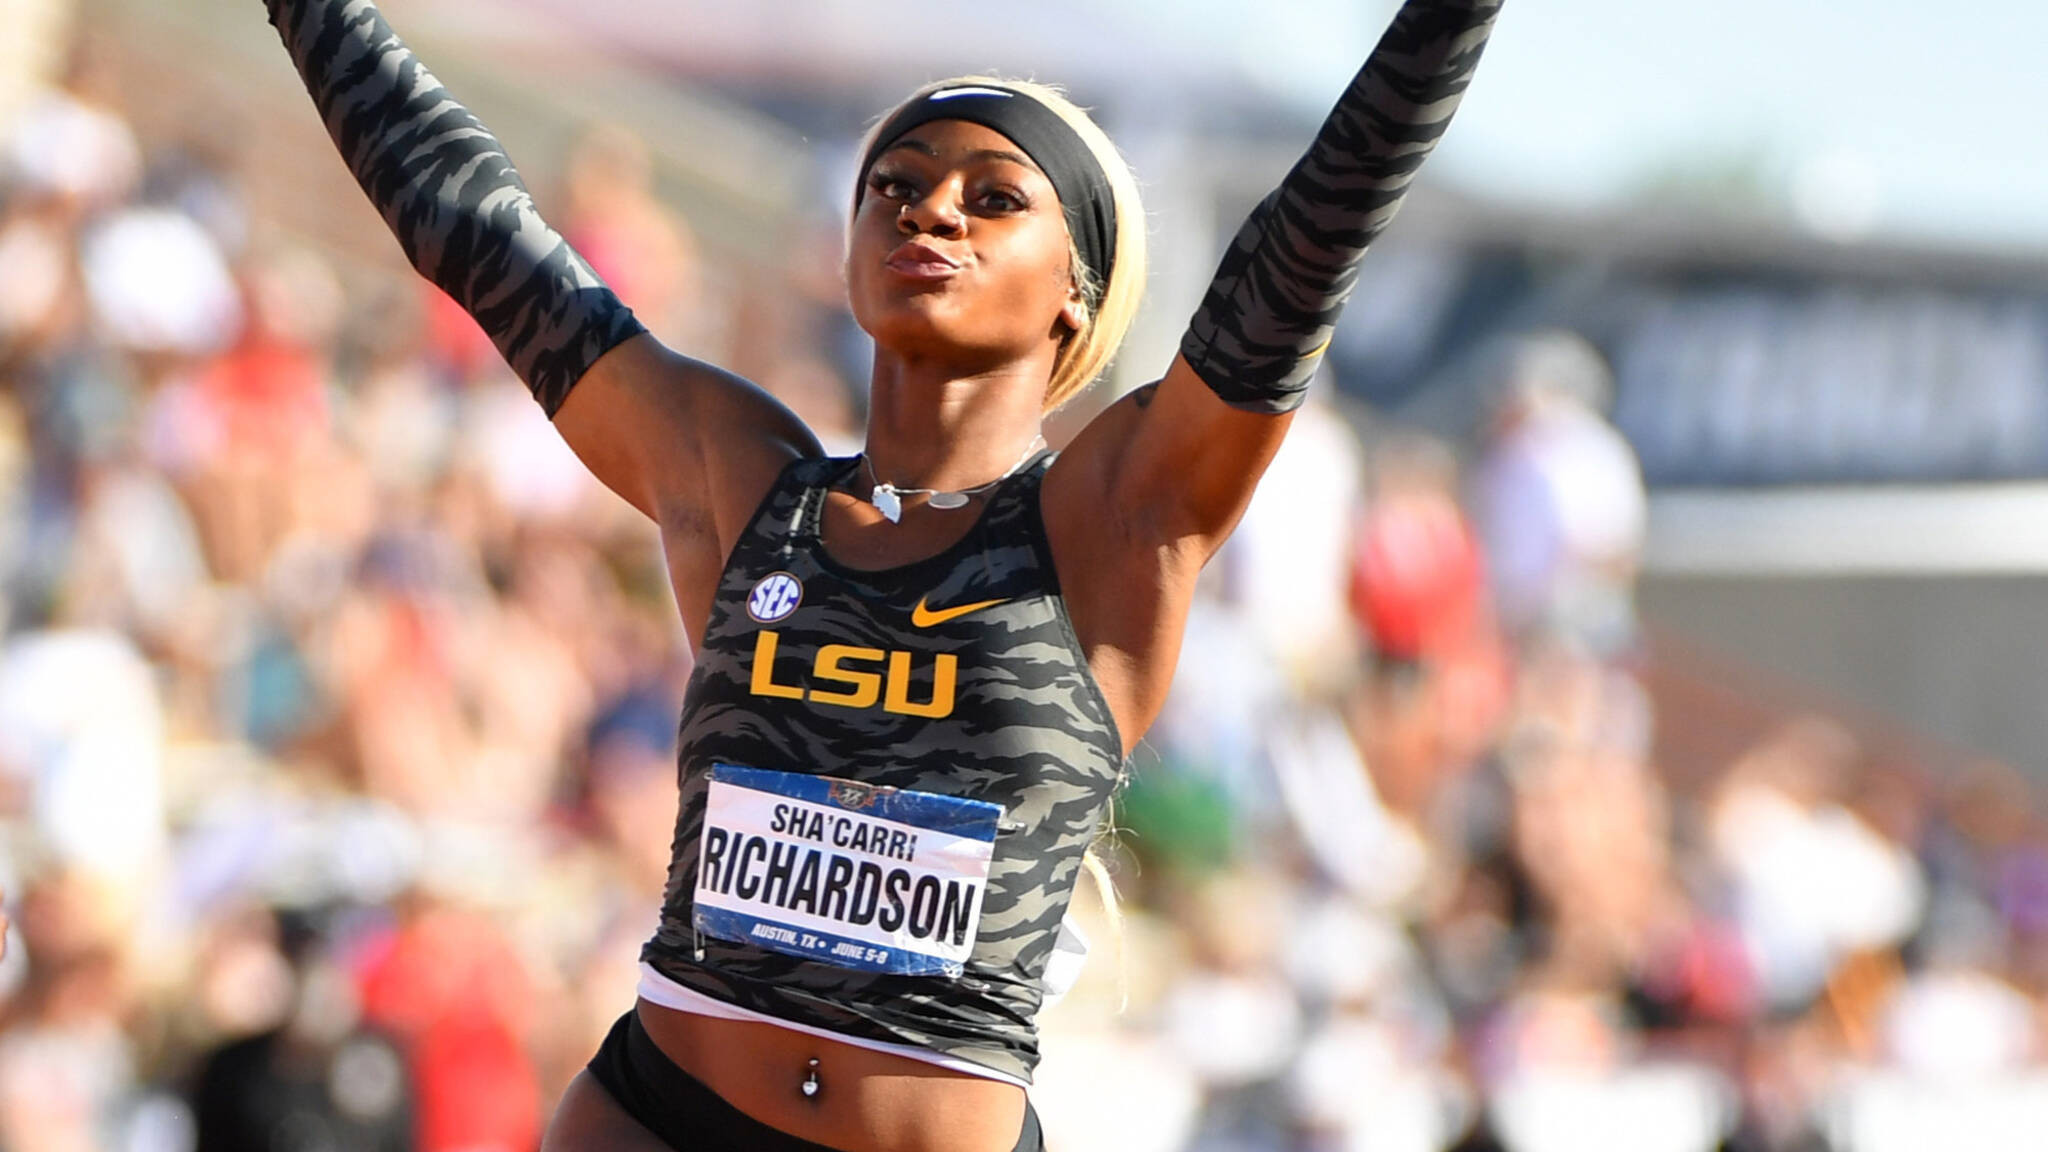 It is hoped the Collegiate Advisory Council established by the USOPC will help promising NCAA athletes like Sha'Carri Richardson make the transition from university competition to Olympic-level standard ©Getty Images